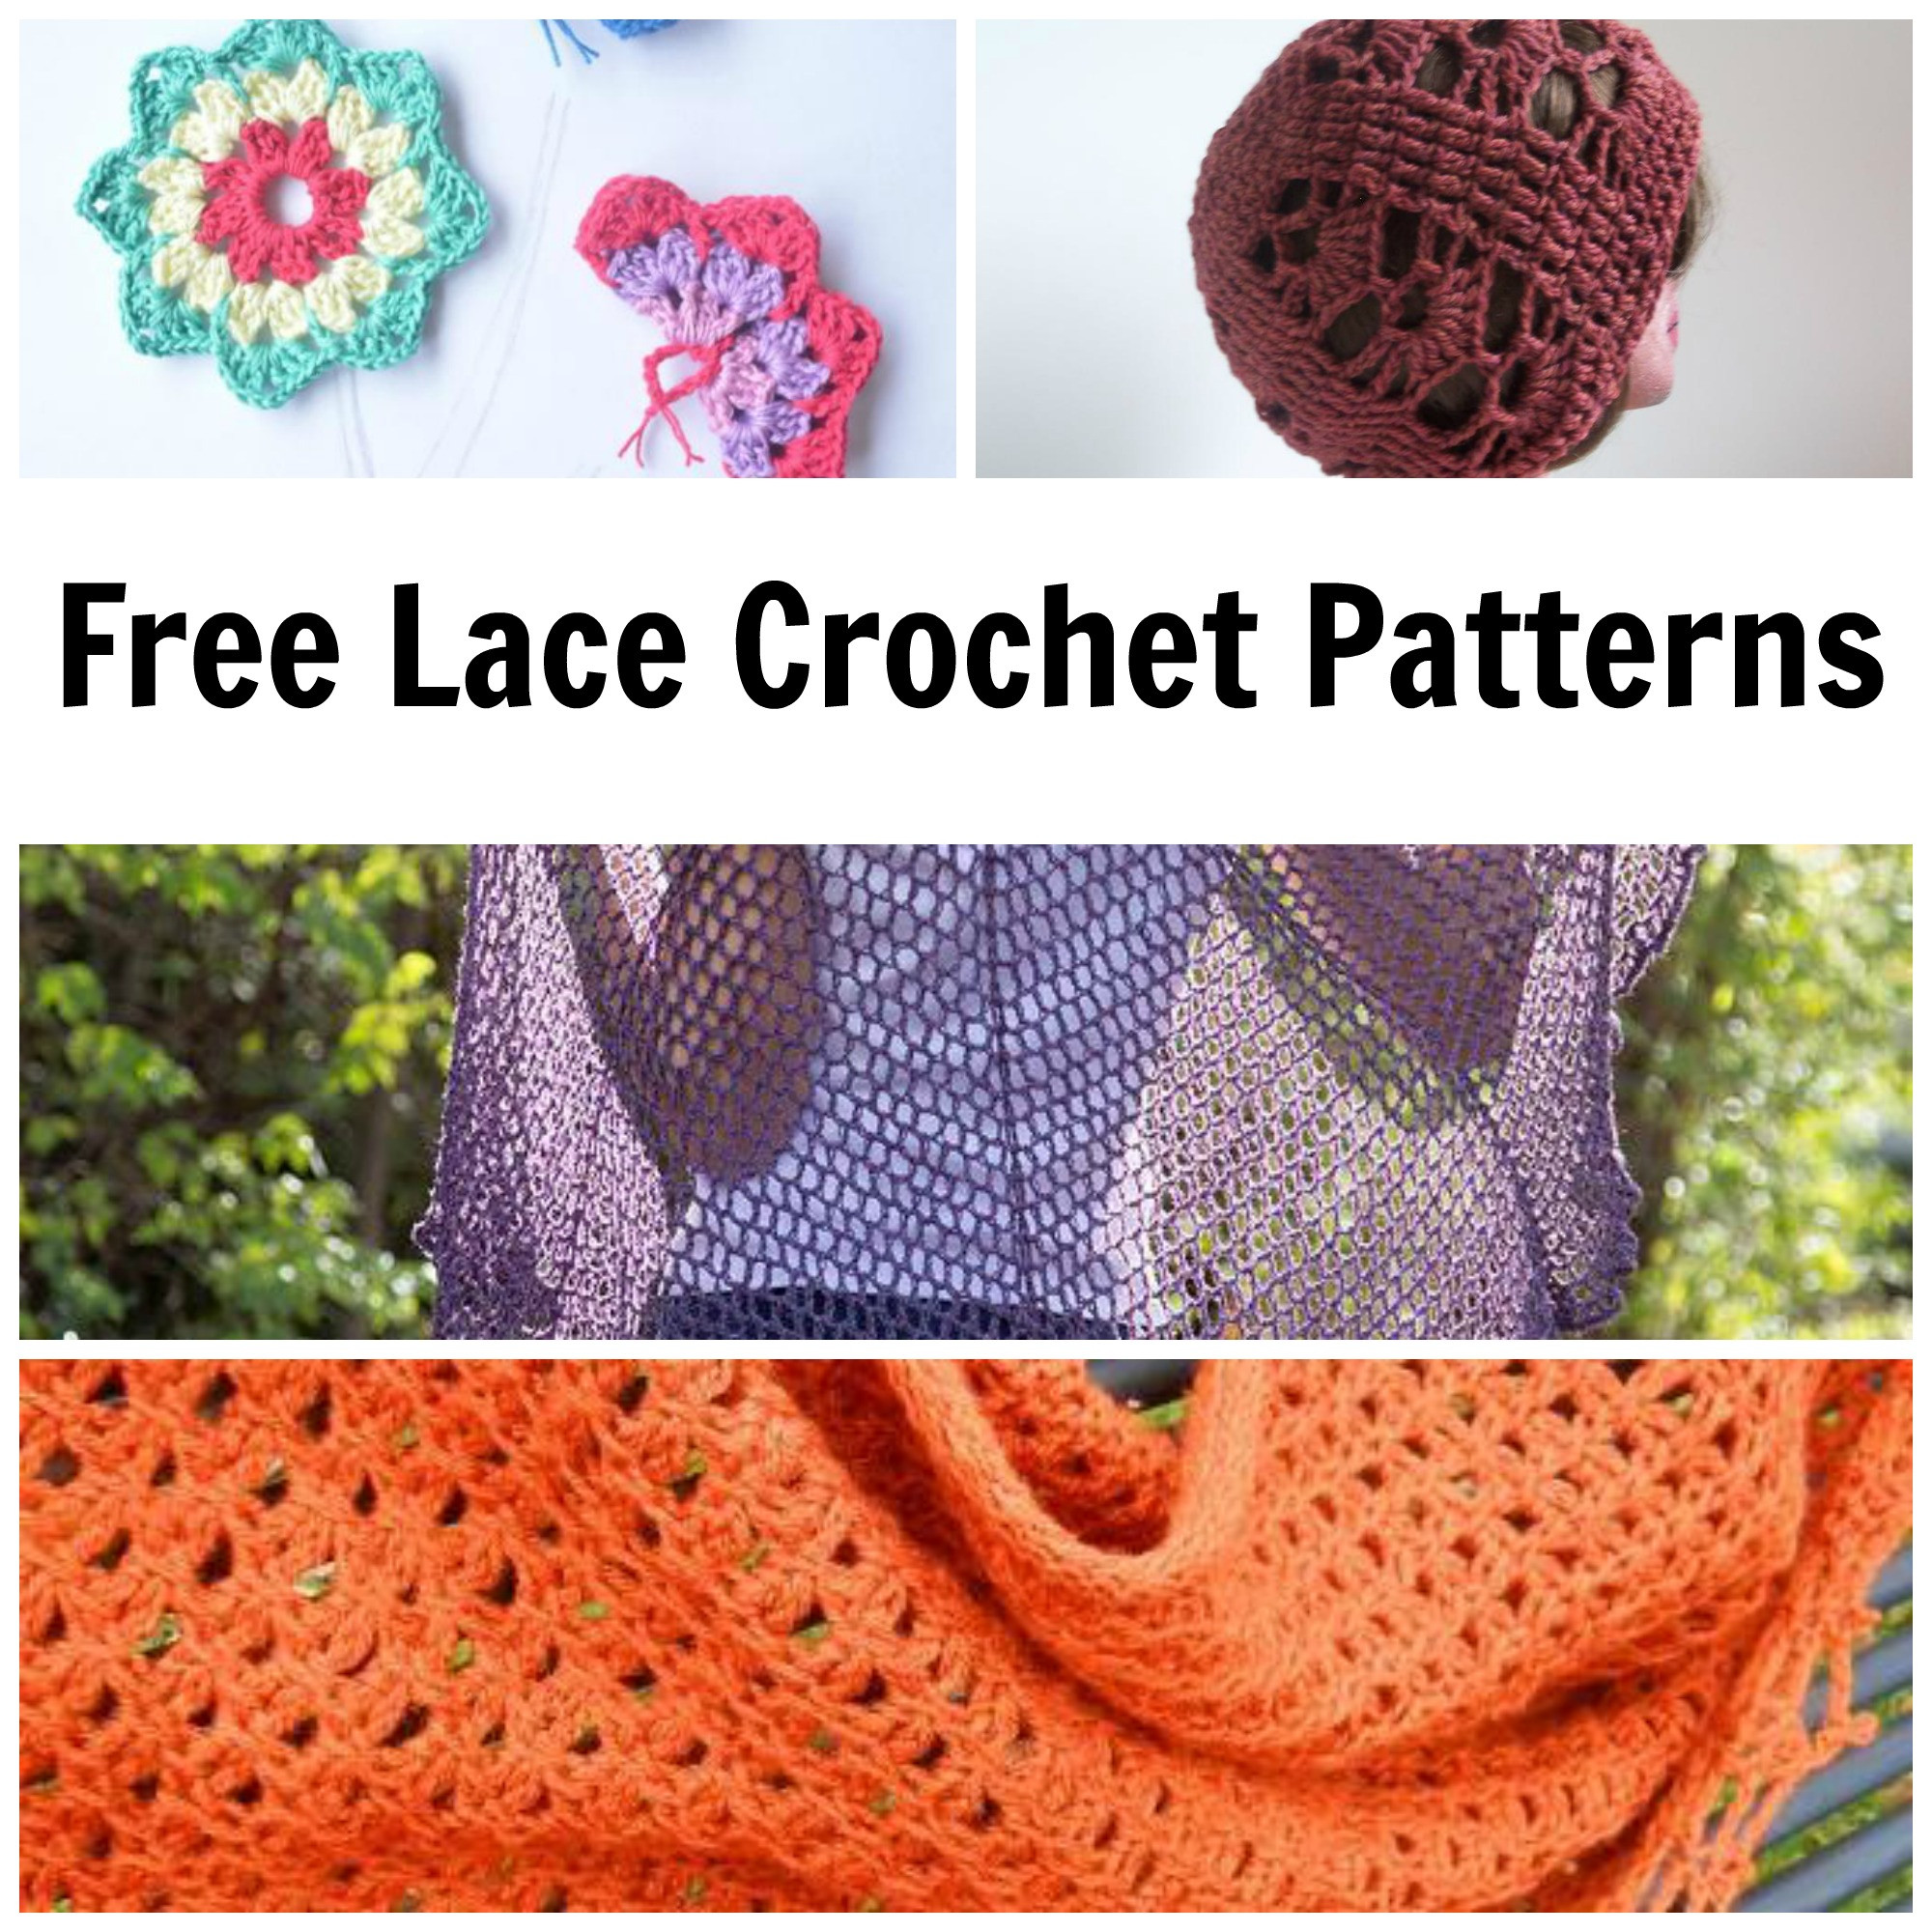 Crochet Patterns Unique 7 Classic Beautiful Free Lace Crochet Patterns Of Charming 50 Models Crochet Patterns